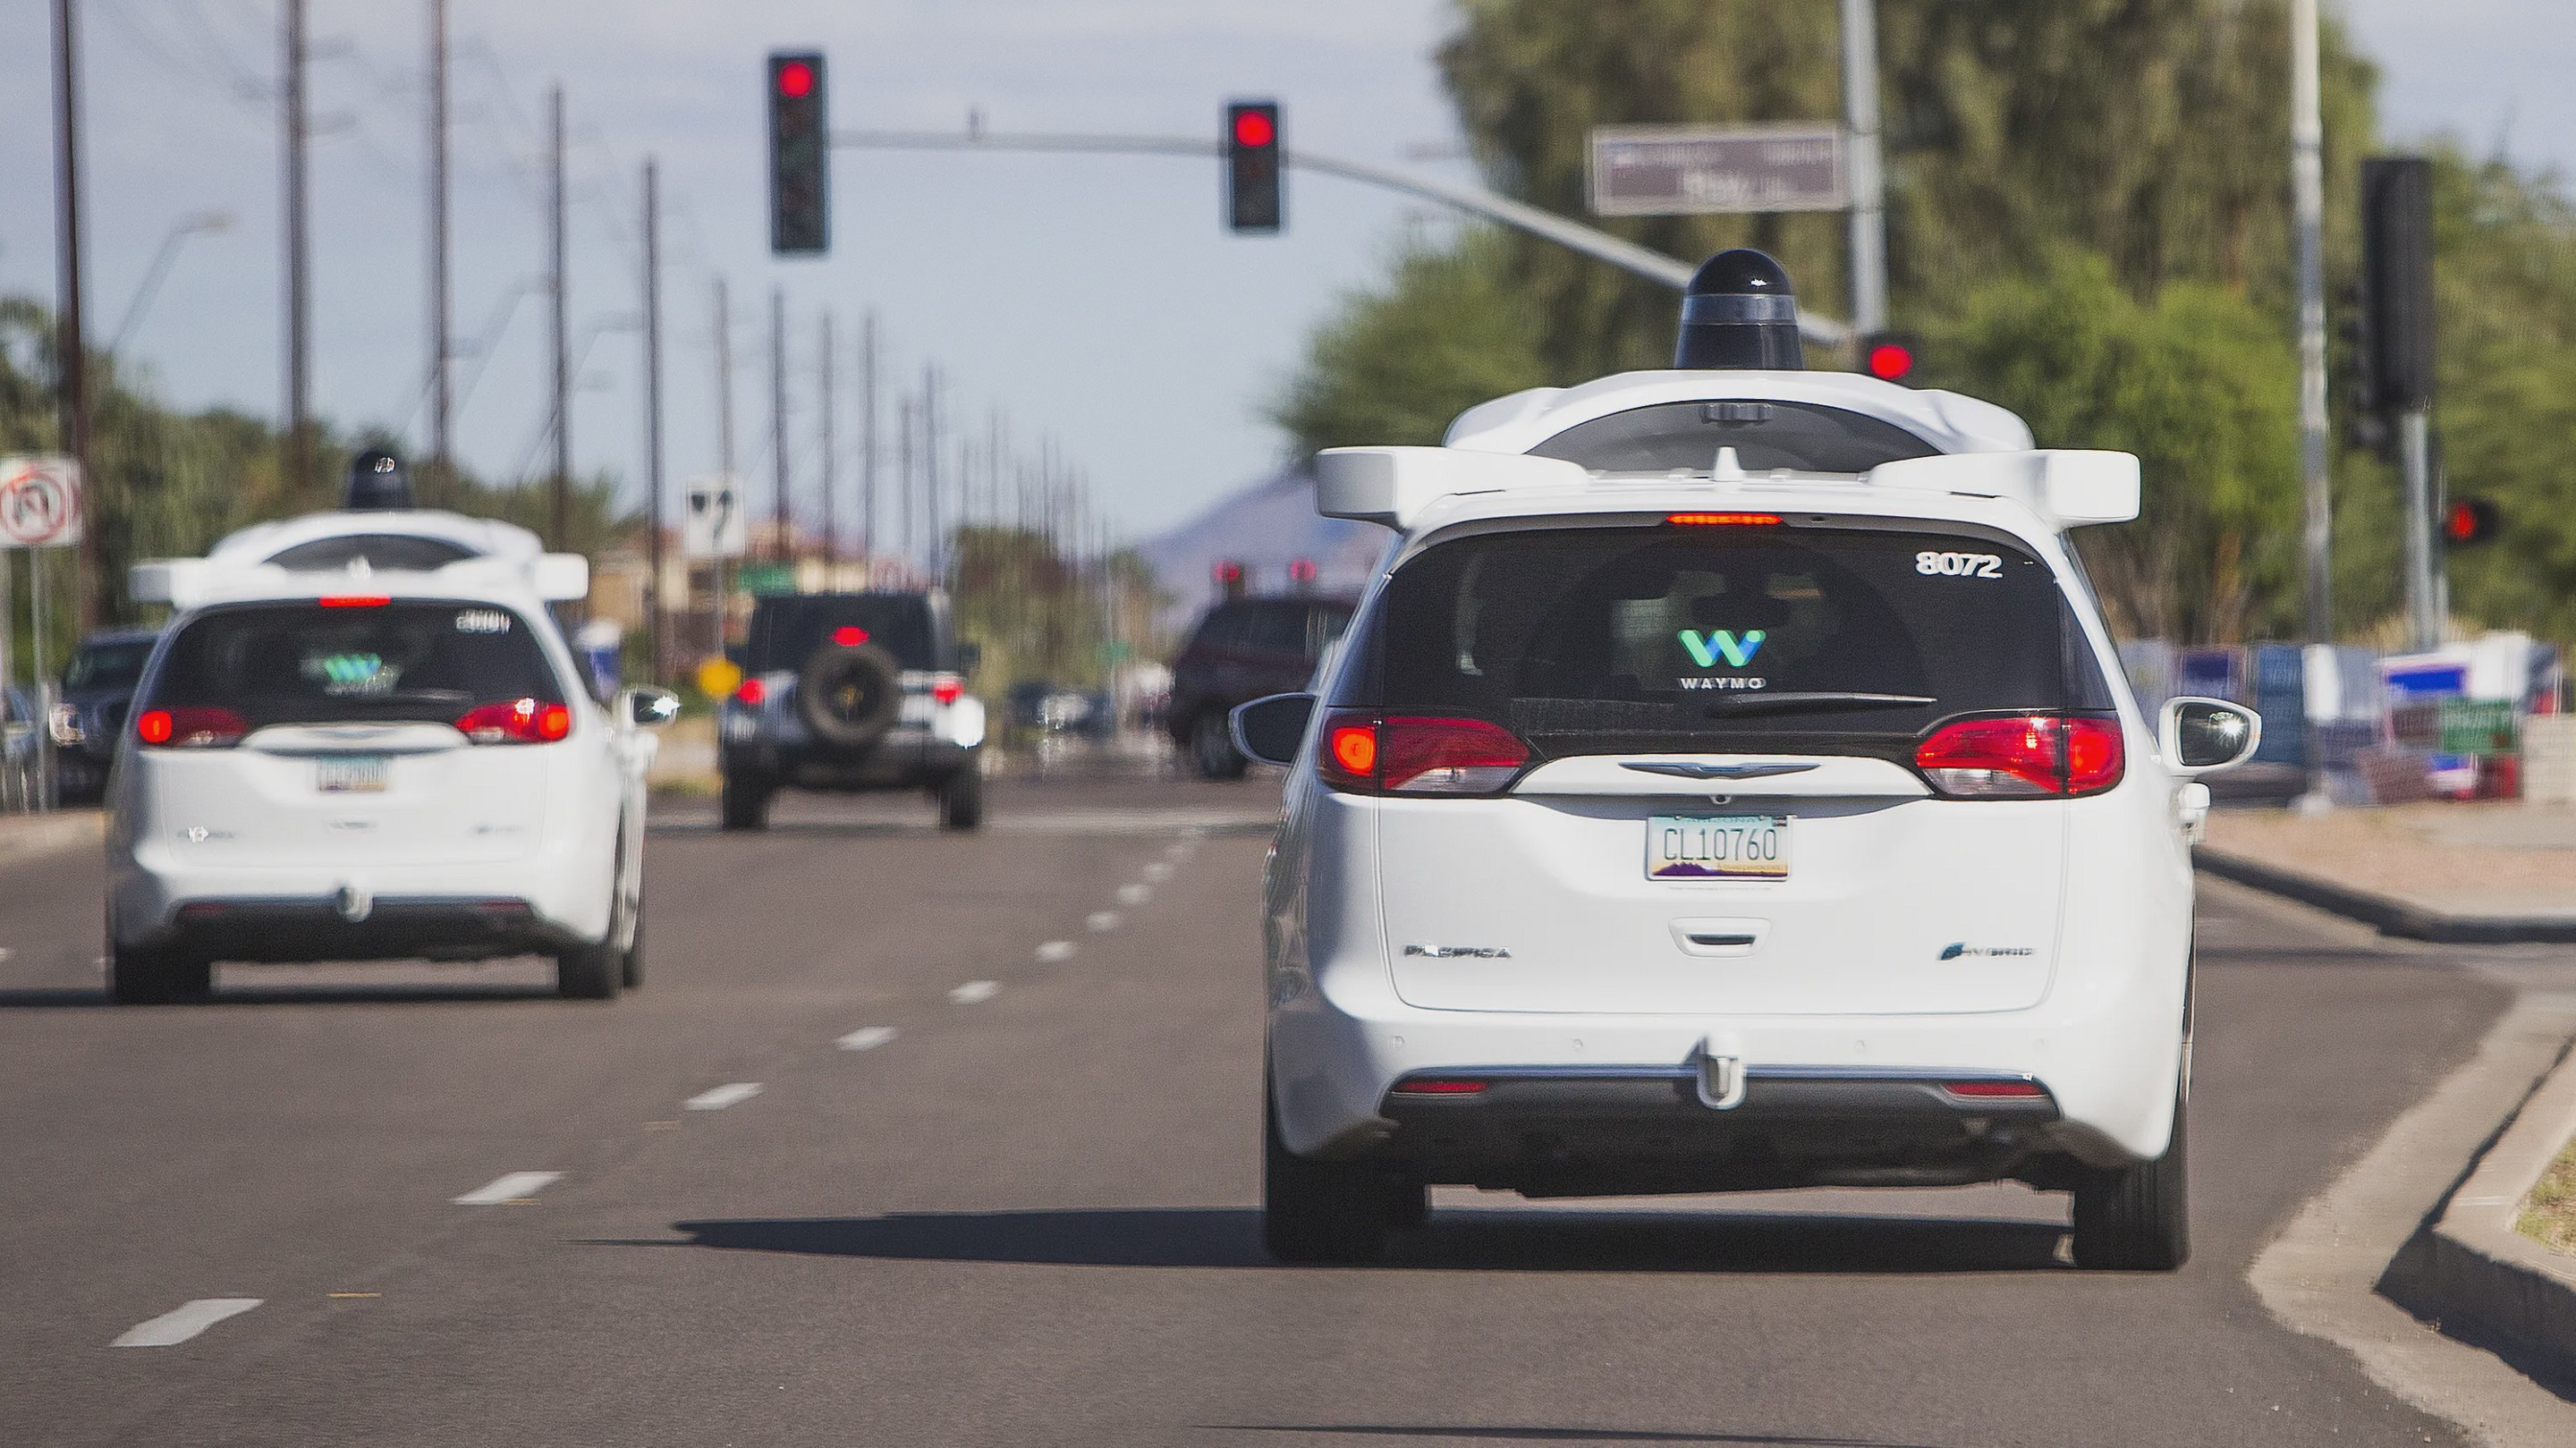 Red Means Stop: Classifying Traffic Lights for Driverless Vehicles